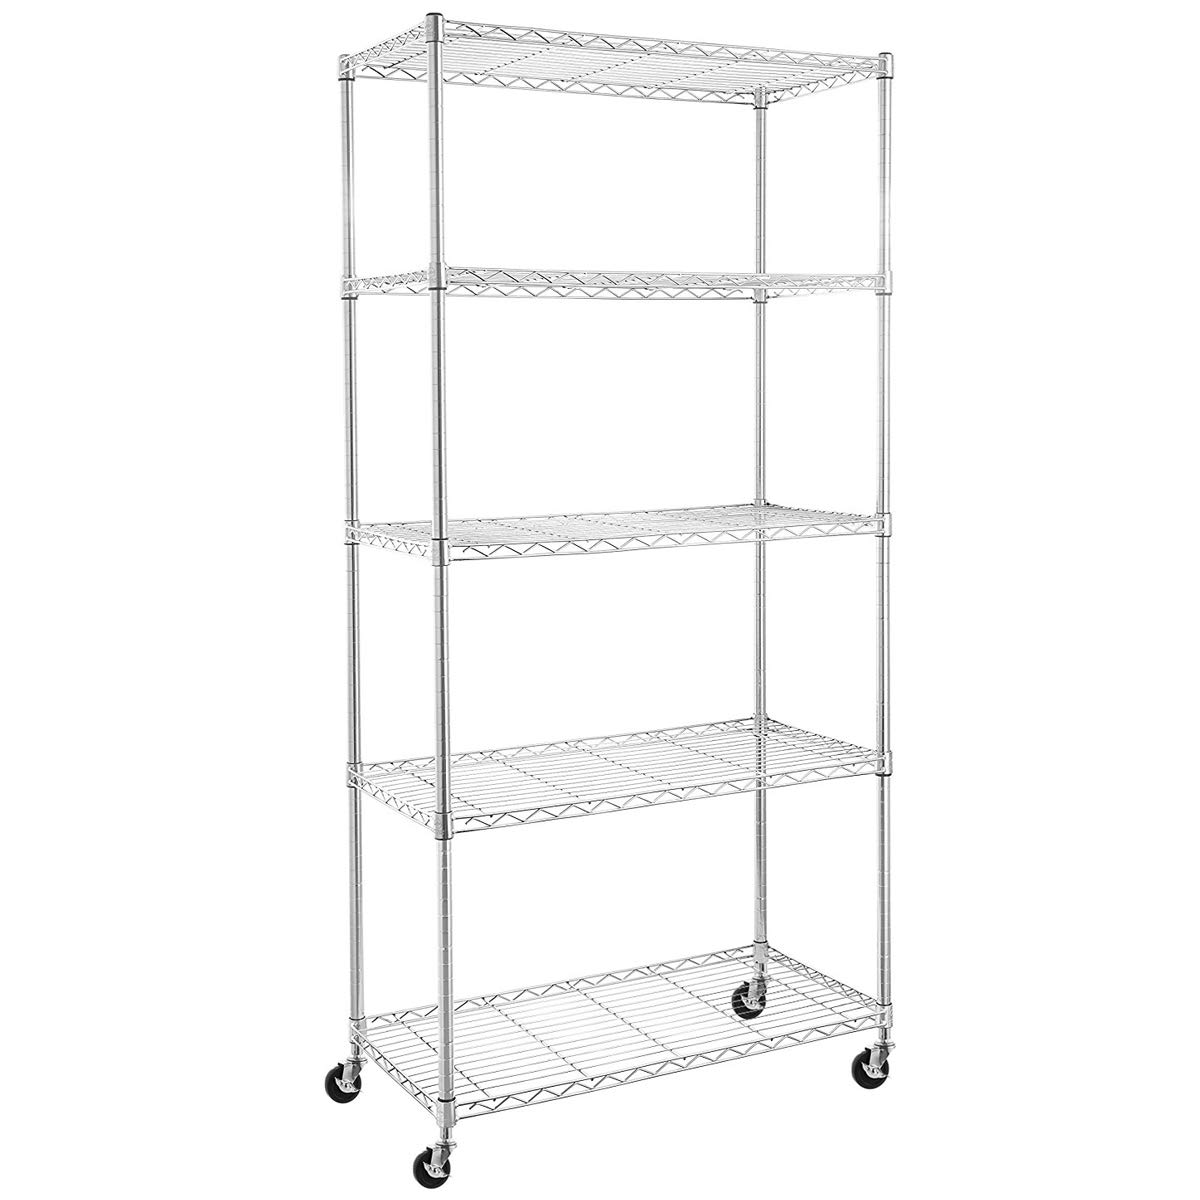 BRIAN & DANY Set of 5 Shelf Liners for Wire Shelving - Smoke Gray Baco Engineering